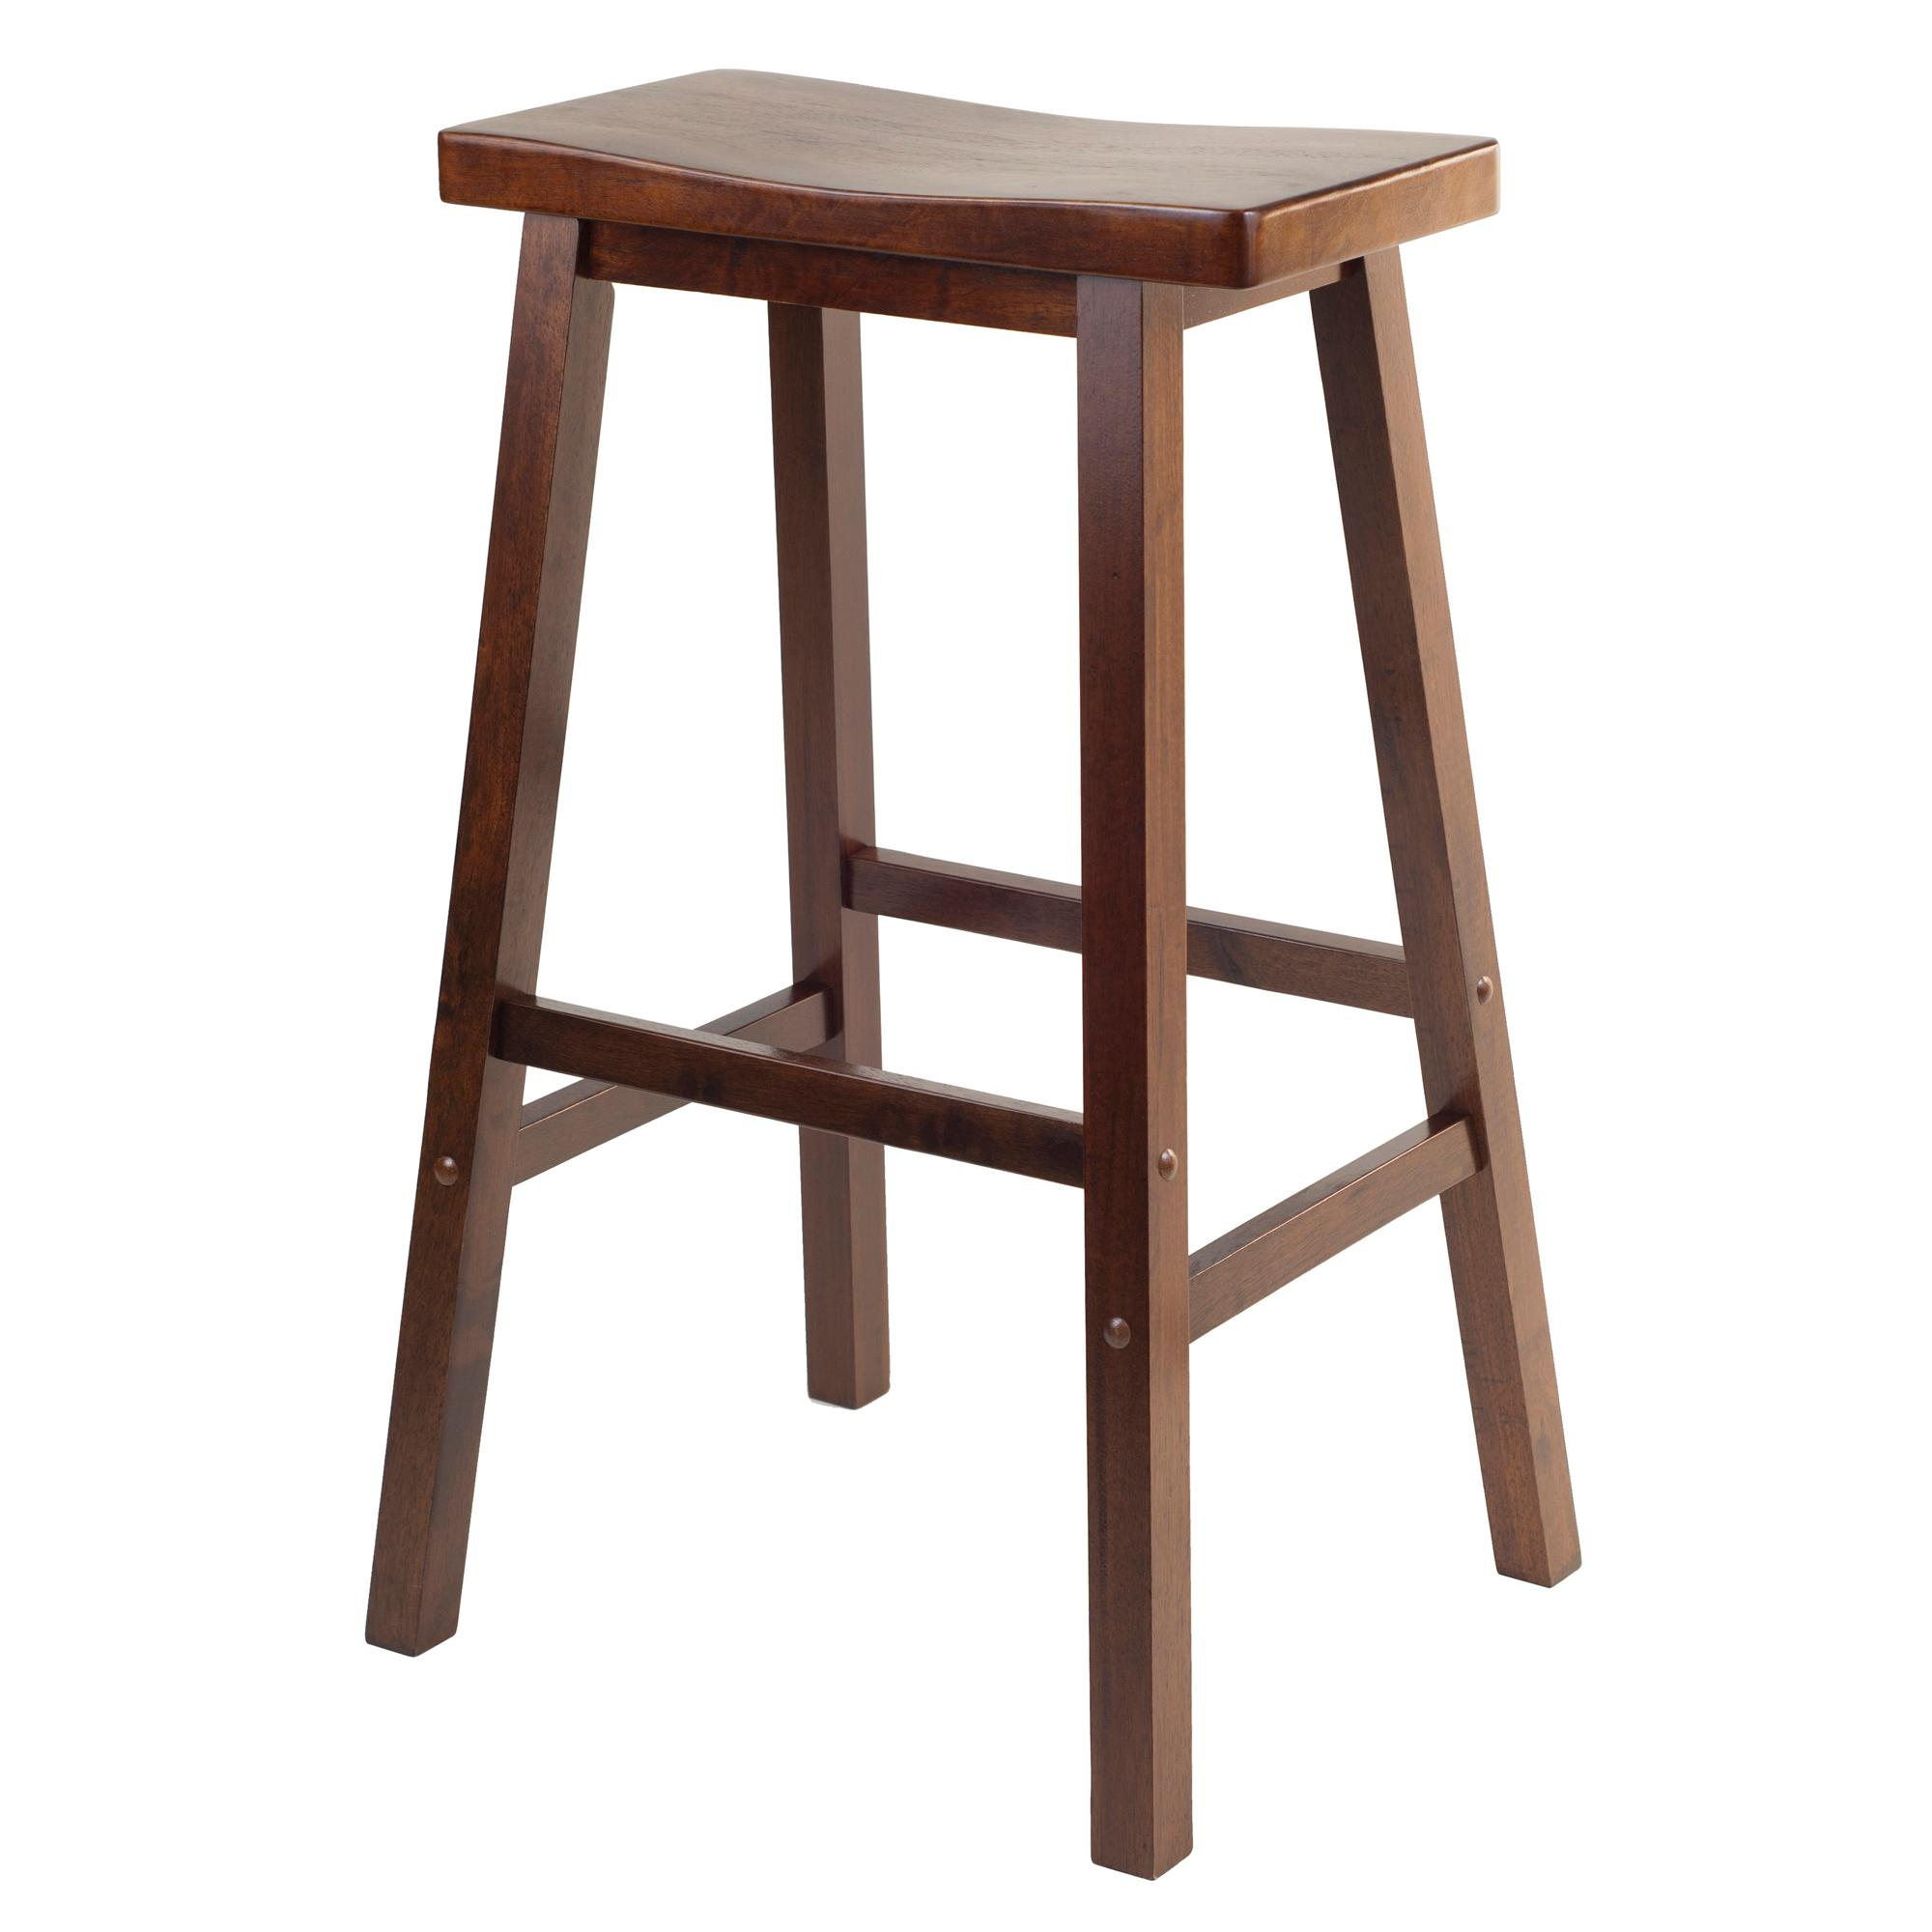 Winsome Wood 29 Inch Saddle Seat Stool Walnut Amazon Ca